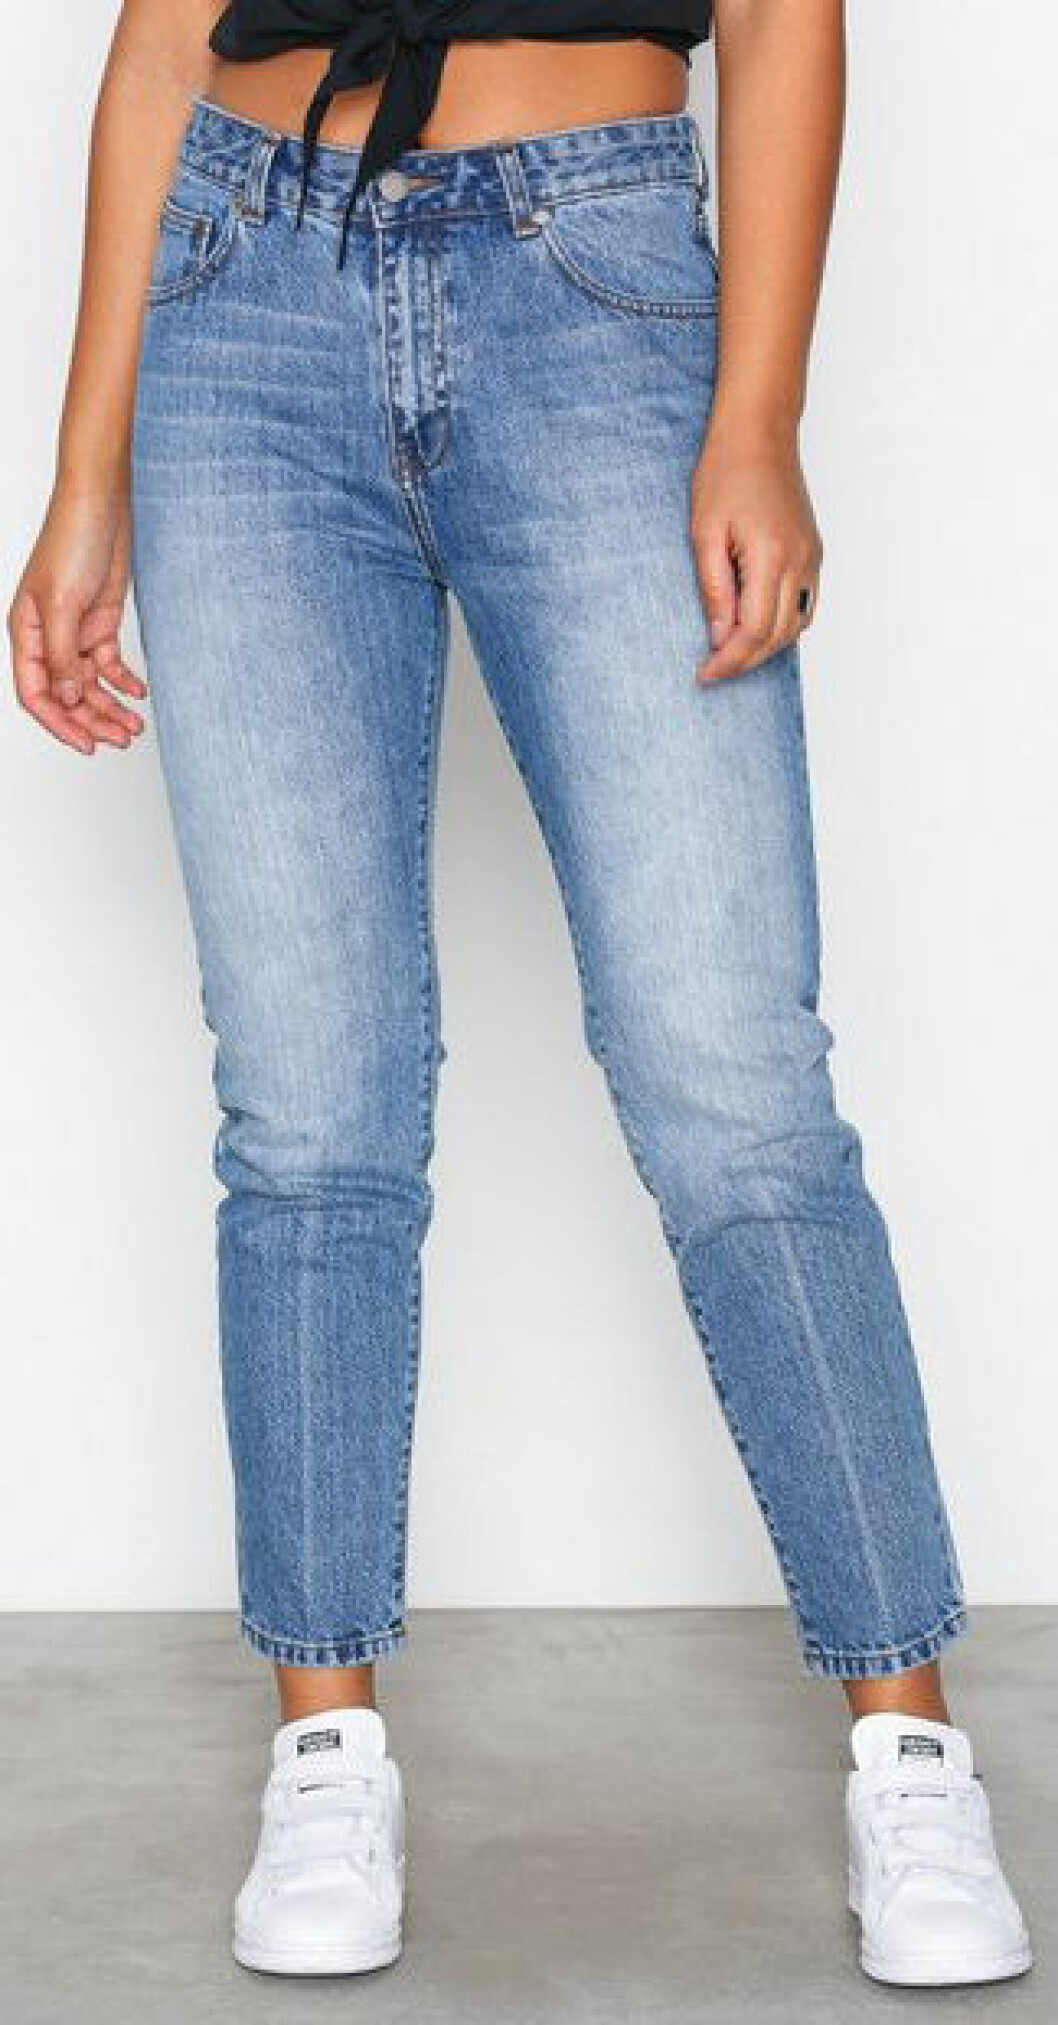 jeans-hosten-2018-dr-denim